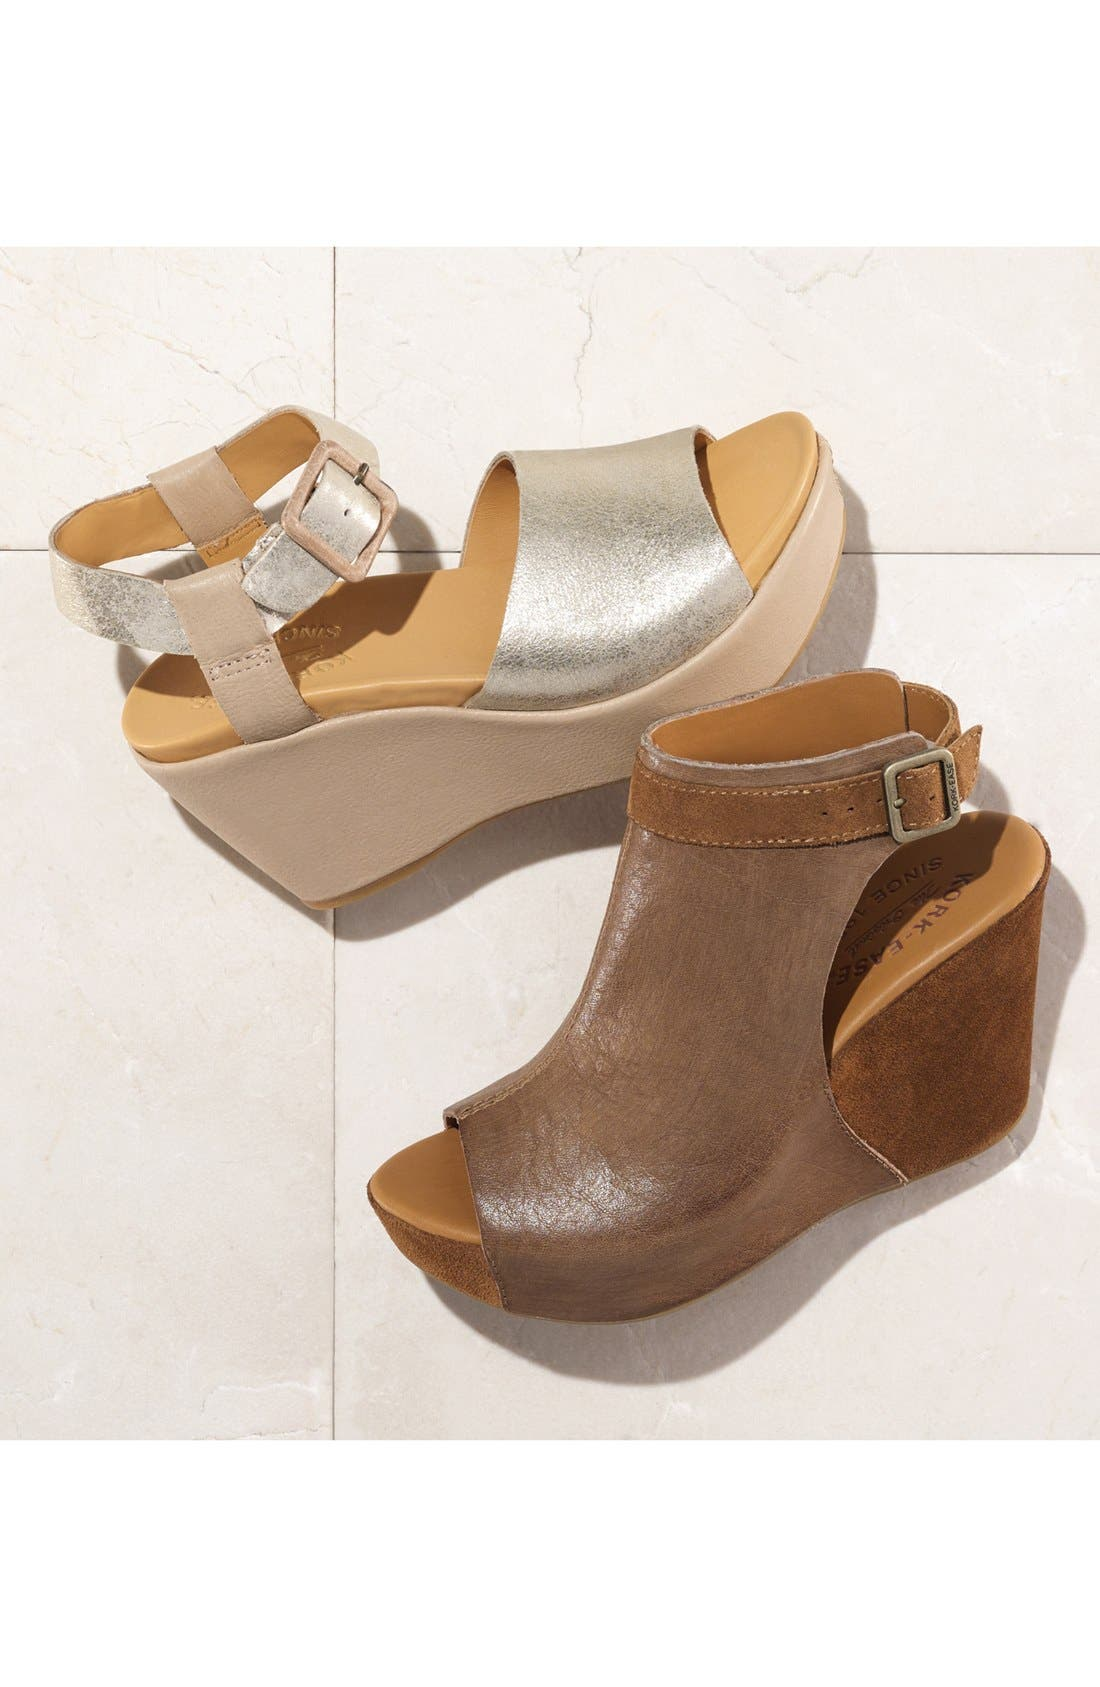 'Berit' Wedge Sandal,                             Alternate thumbnail 2, color,